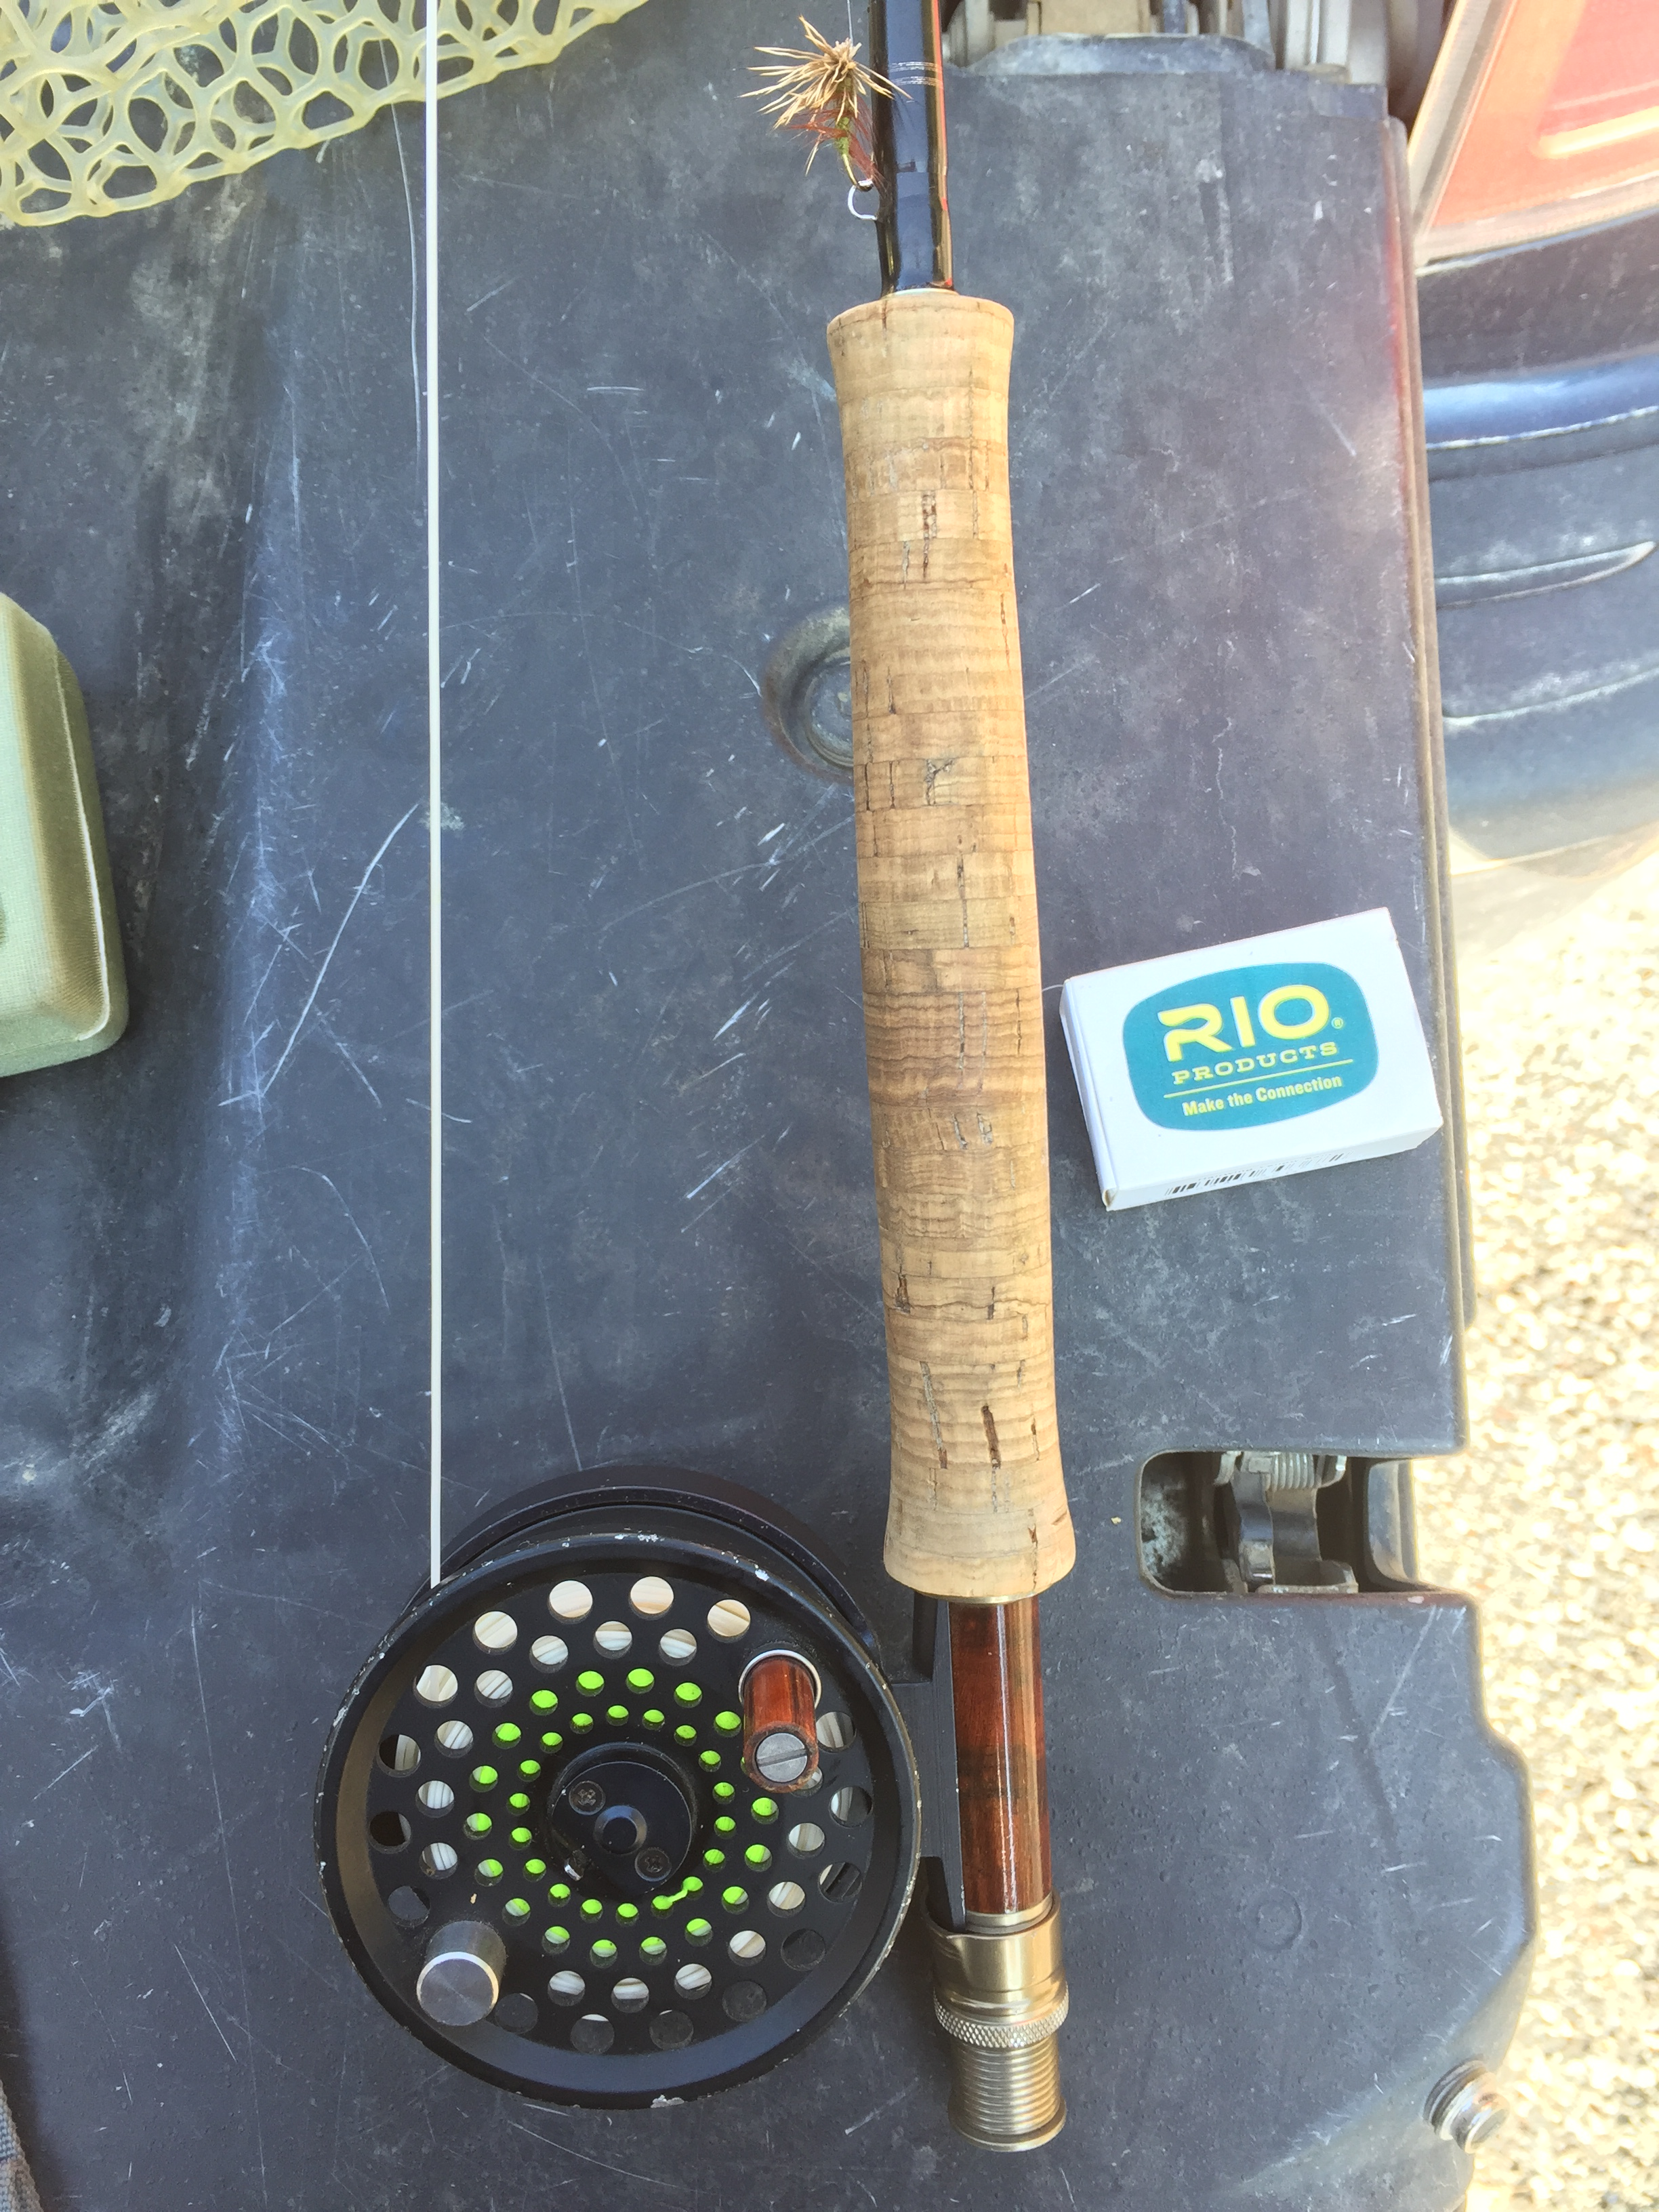 Peter fishing tackle